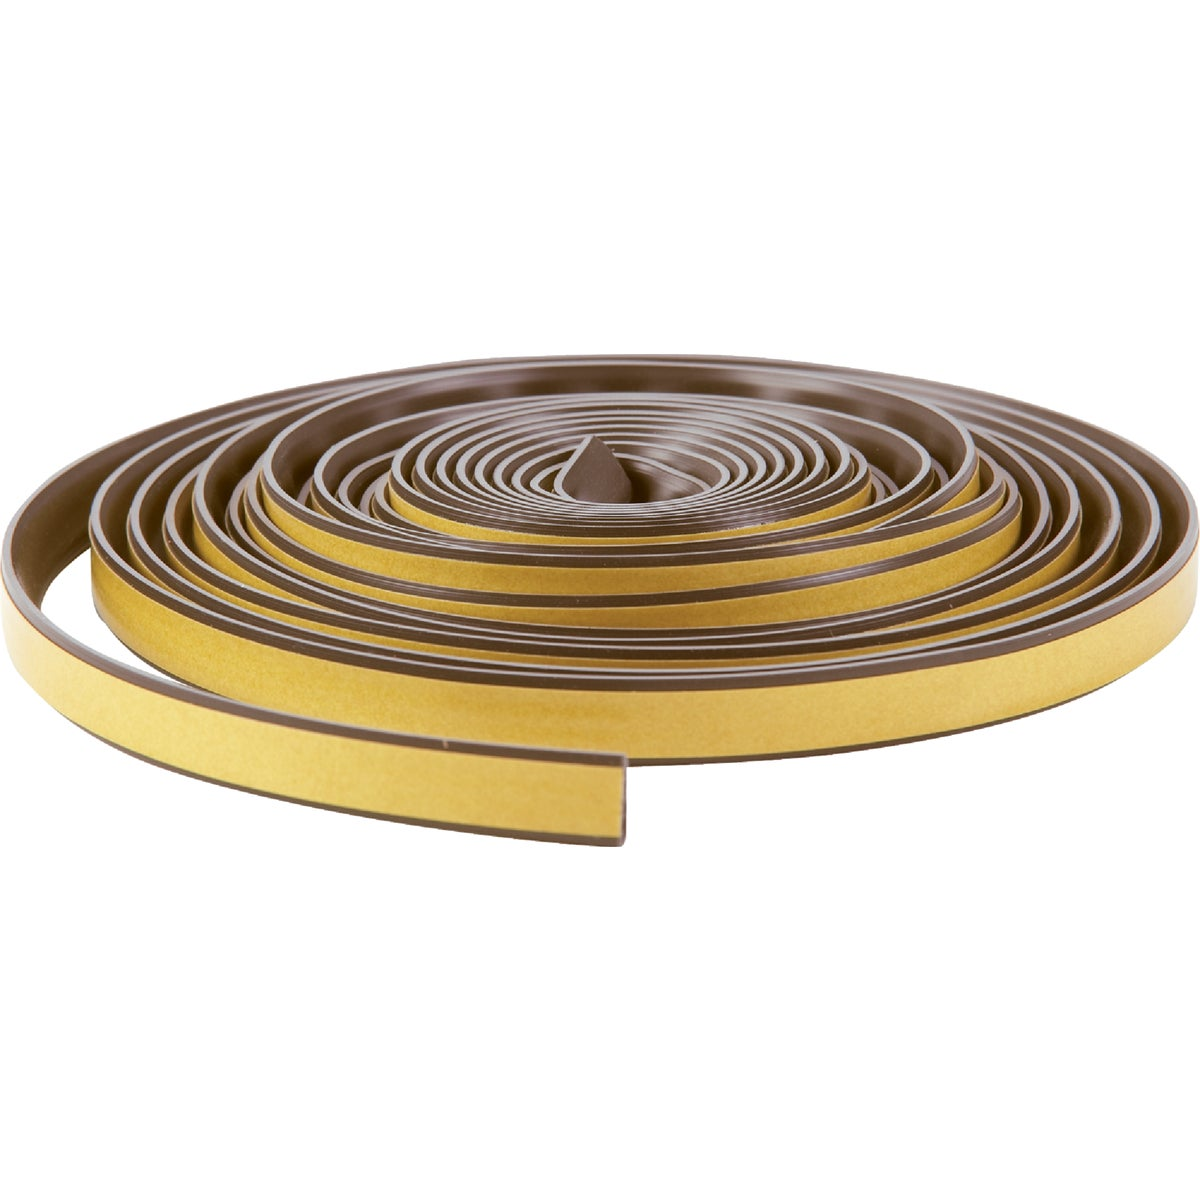 Item 272724, Silicone weatherseal with self-stick tape. Ideal for doorways or similar applications. Smoke seal. Built-in memory/retains shape. Will not harden, crack, or freeze.